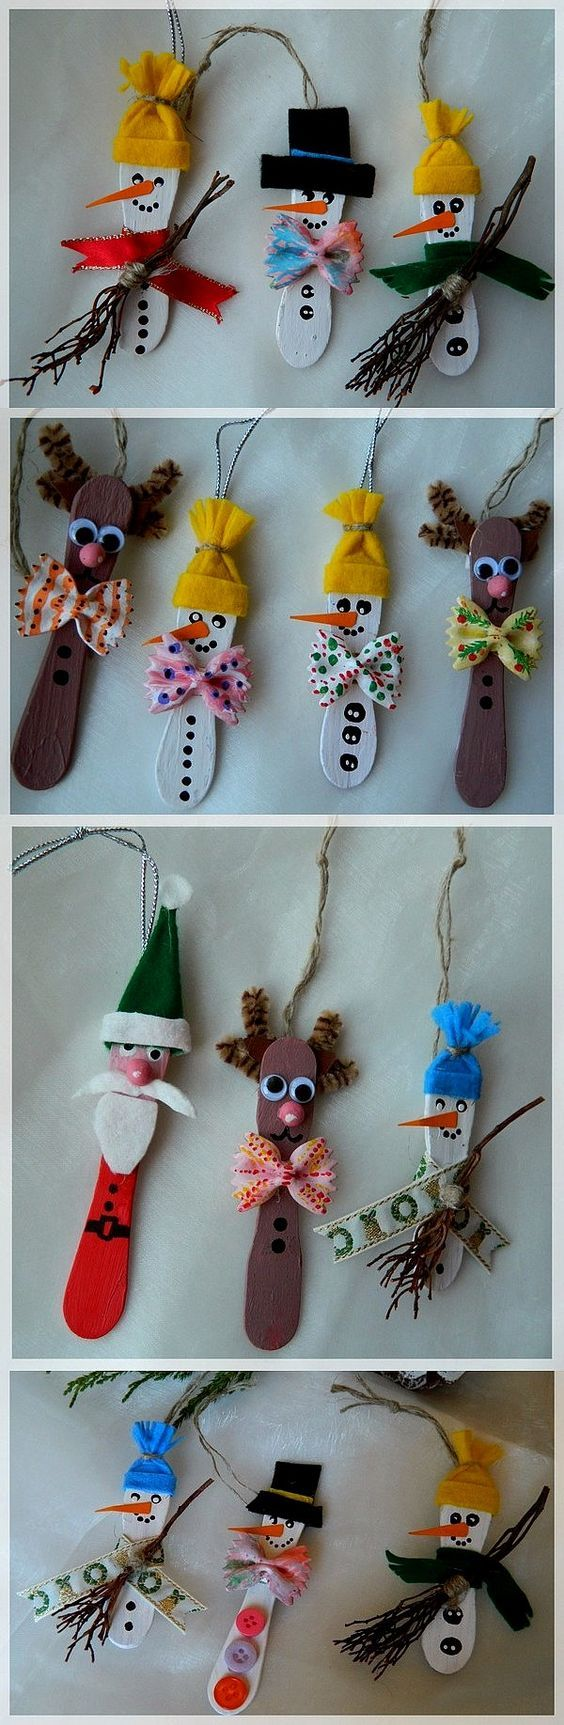 Make quick and easy ornaments out of mini wooden ice cream sticks, tongue depressors or popsicle sticks.: